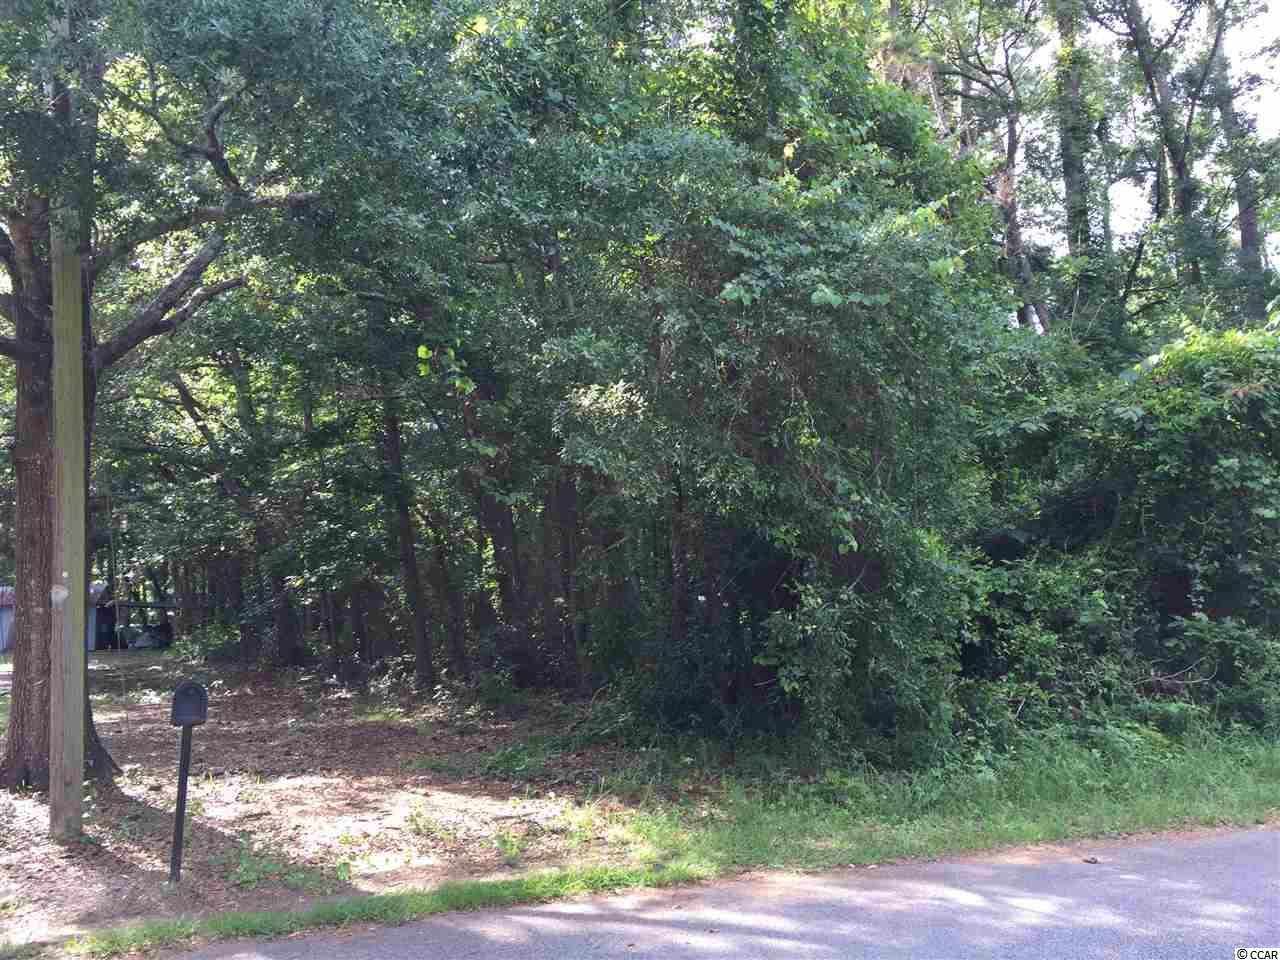 Huge lot 100 X 190 This is the best value east of Hwy 17 In Pawley's Island / Litchfield.  Drive to the lot and view the possibilities. Build your dream home or hold it until later. This is and investment you cant afford to miss.